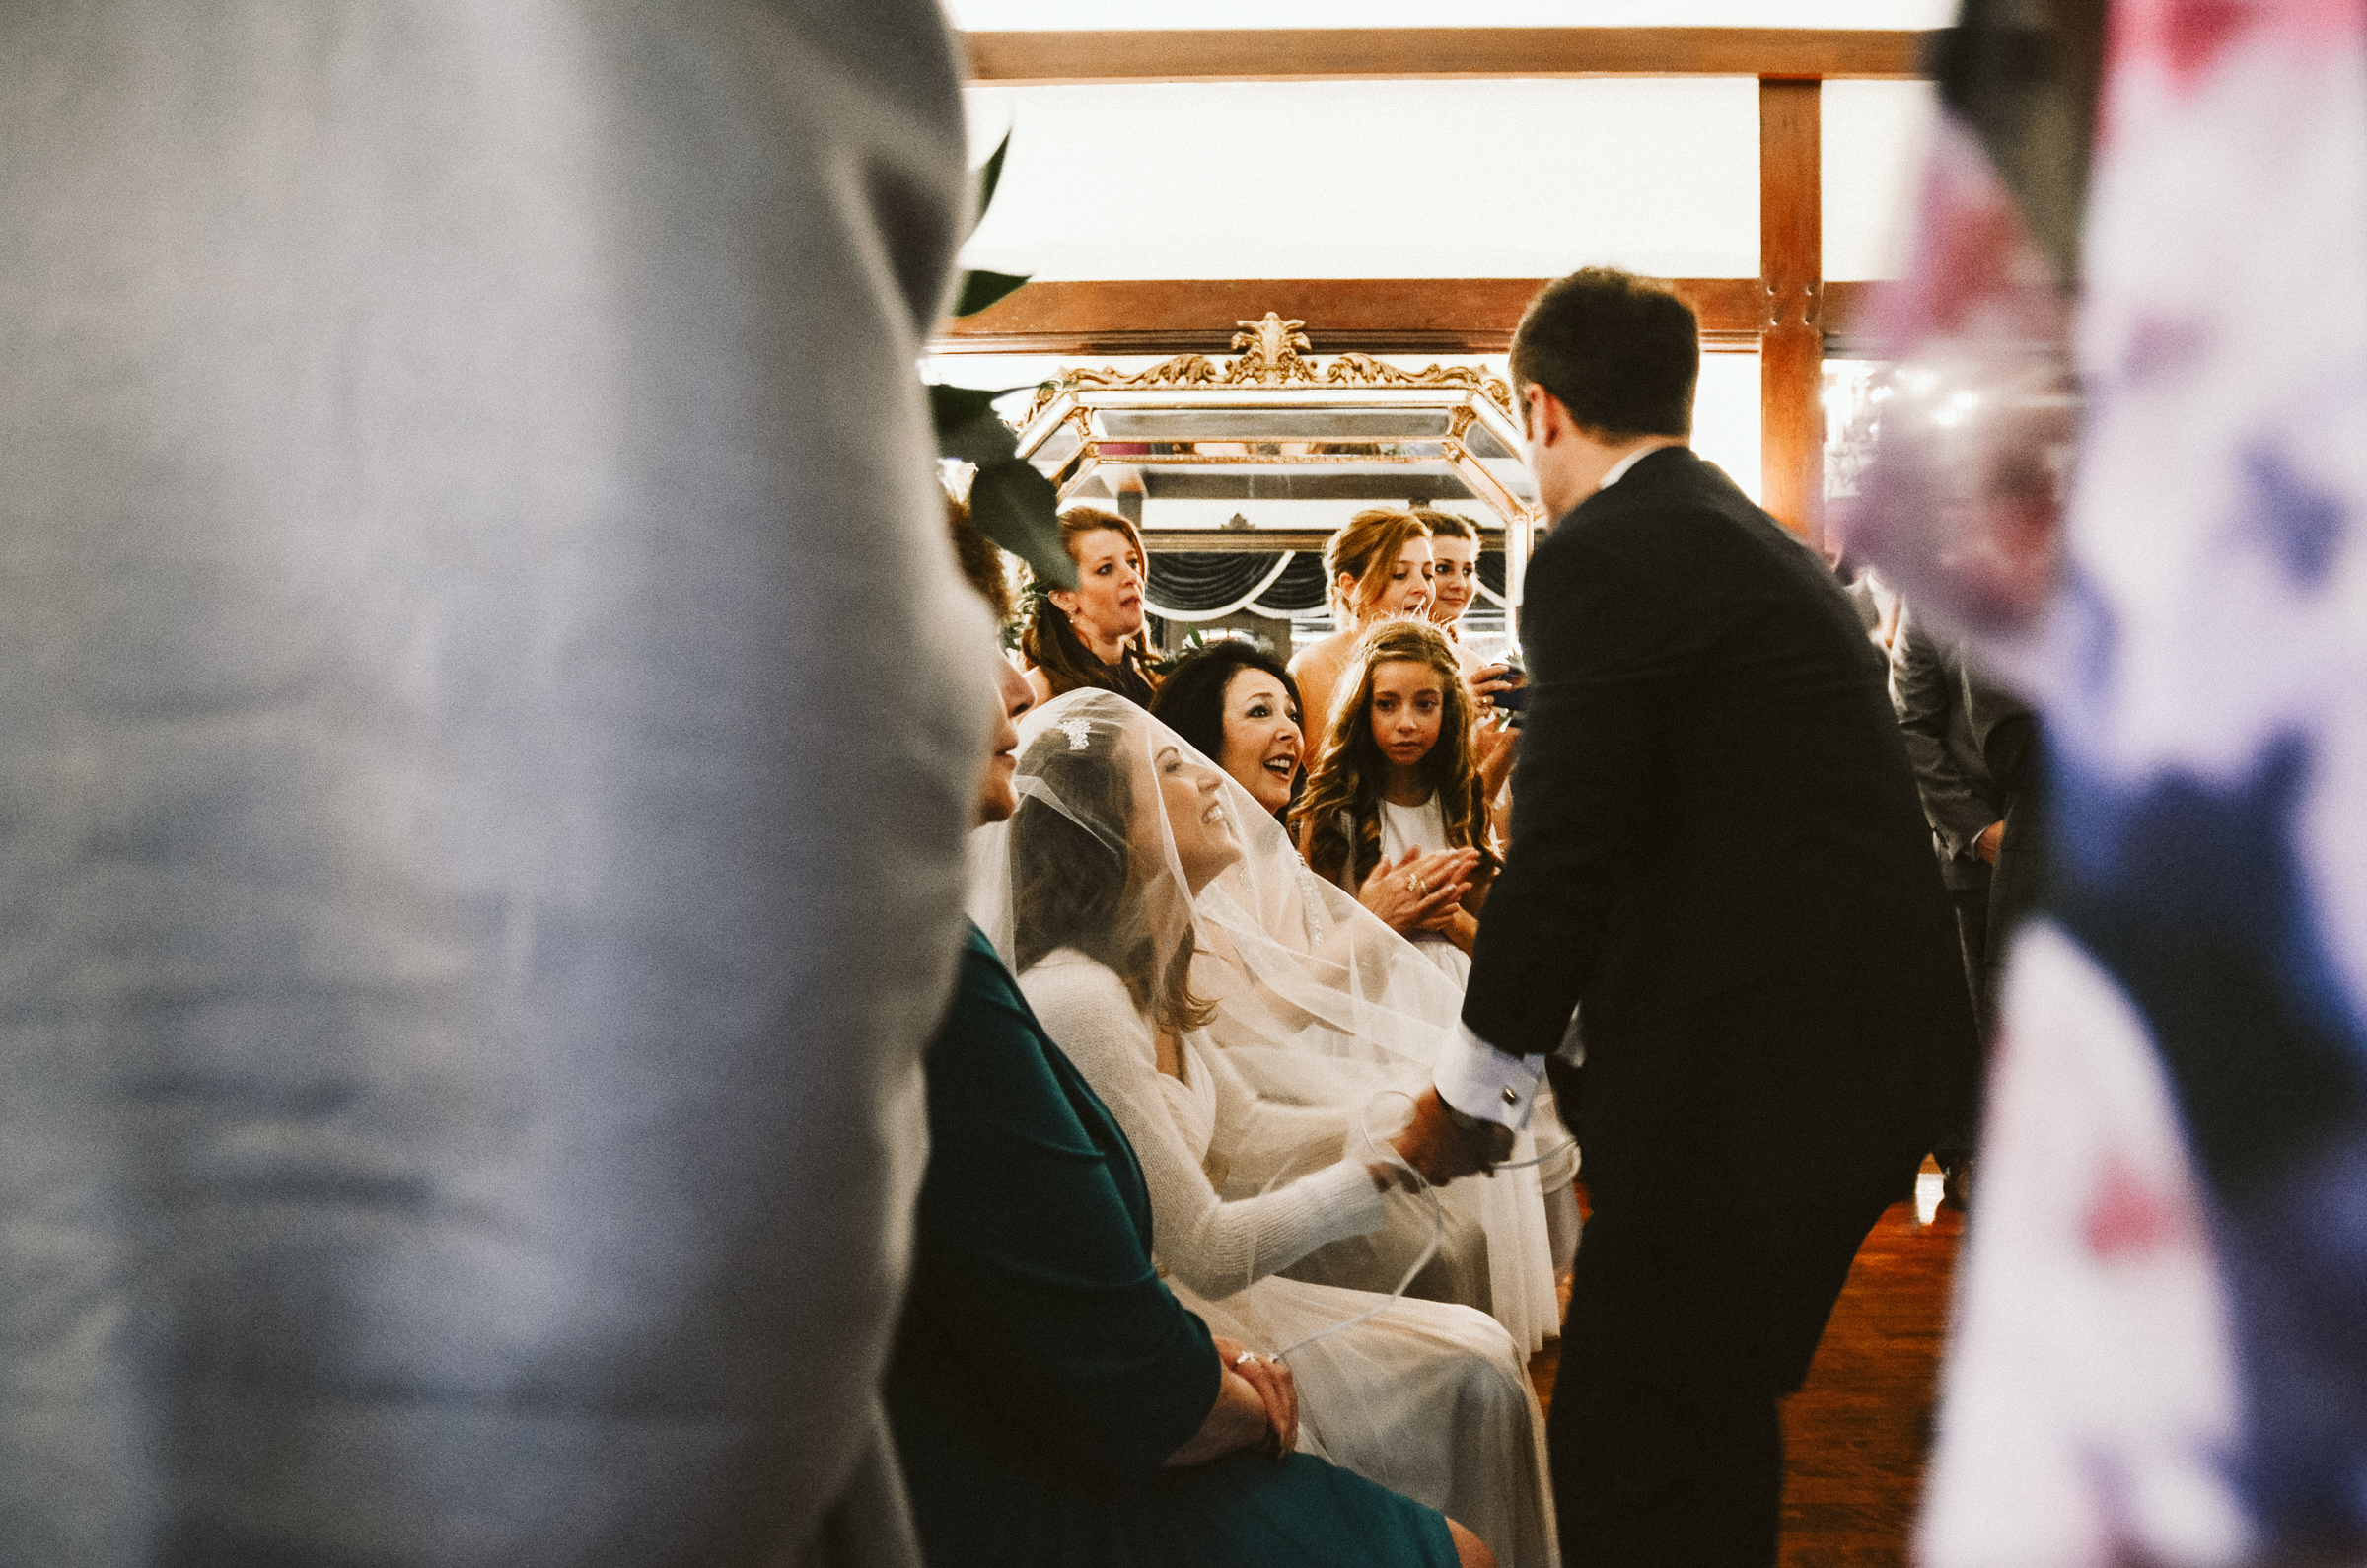 Jen and Drew's Wedding Edited 2019 web-42.jpg